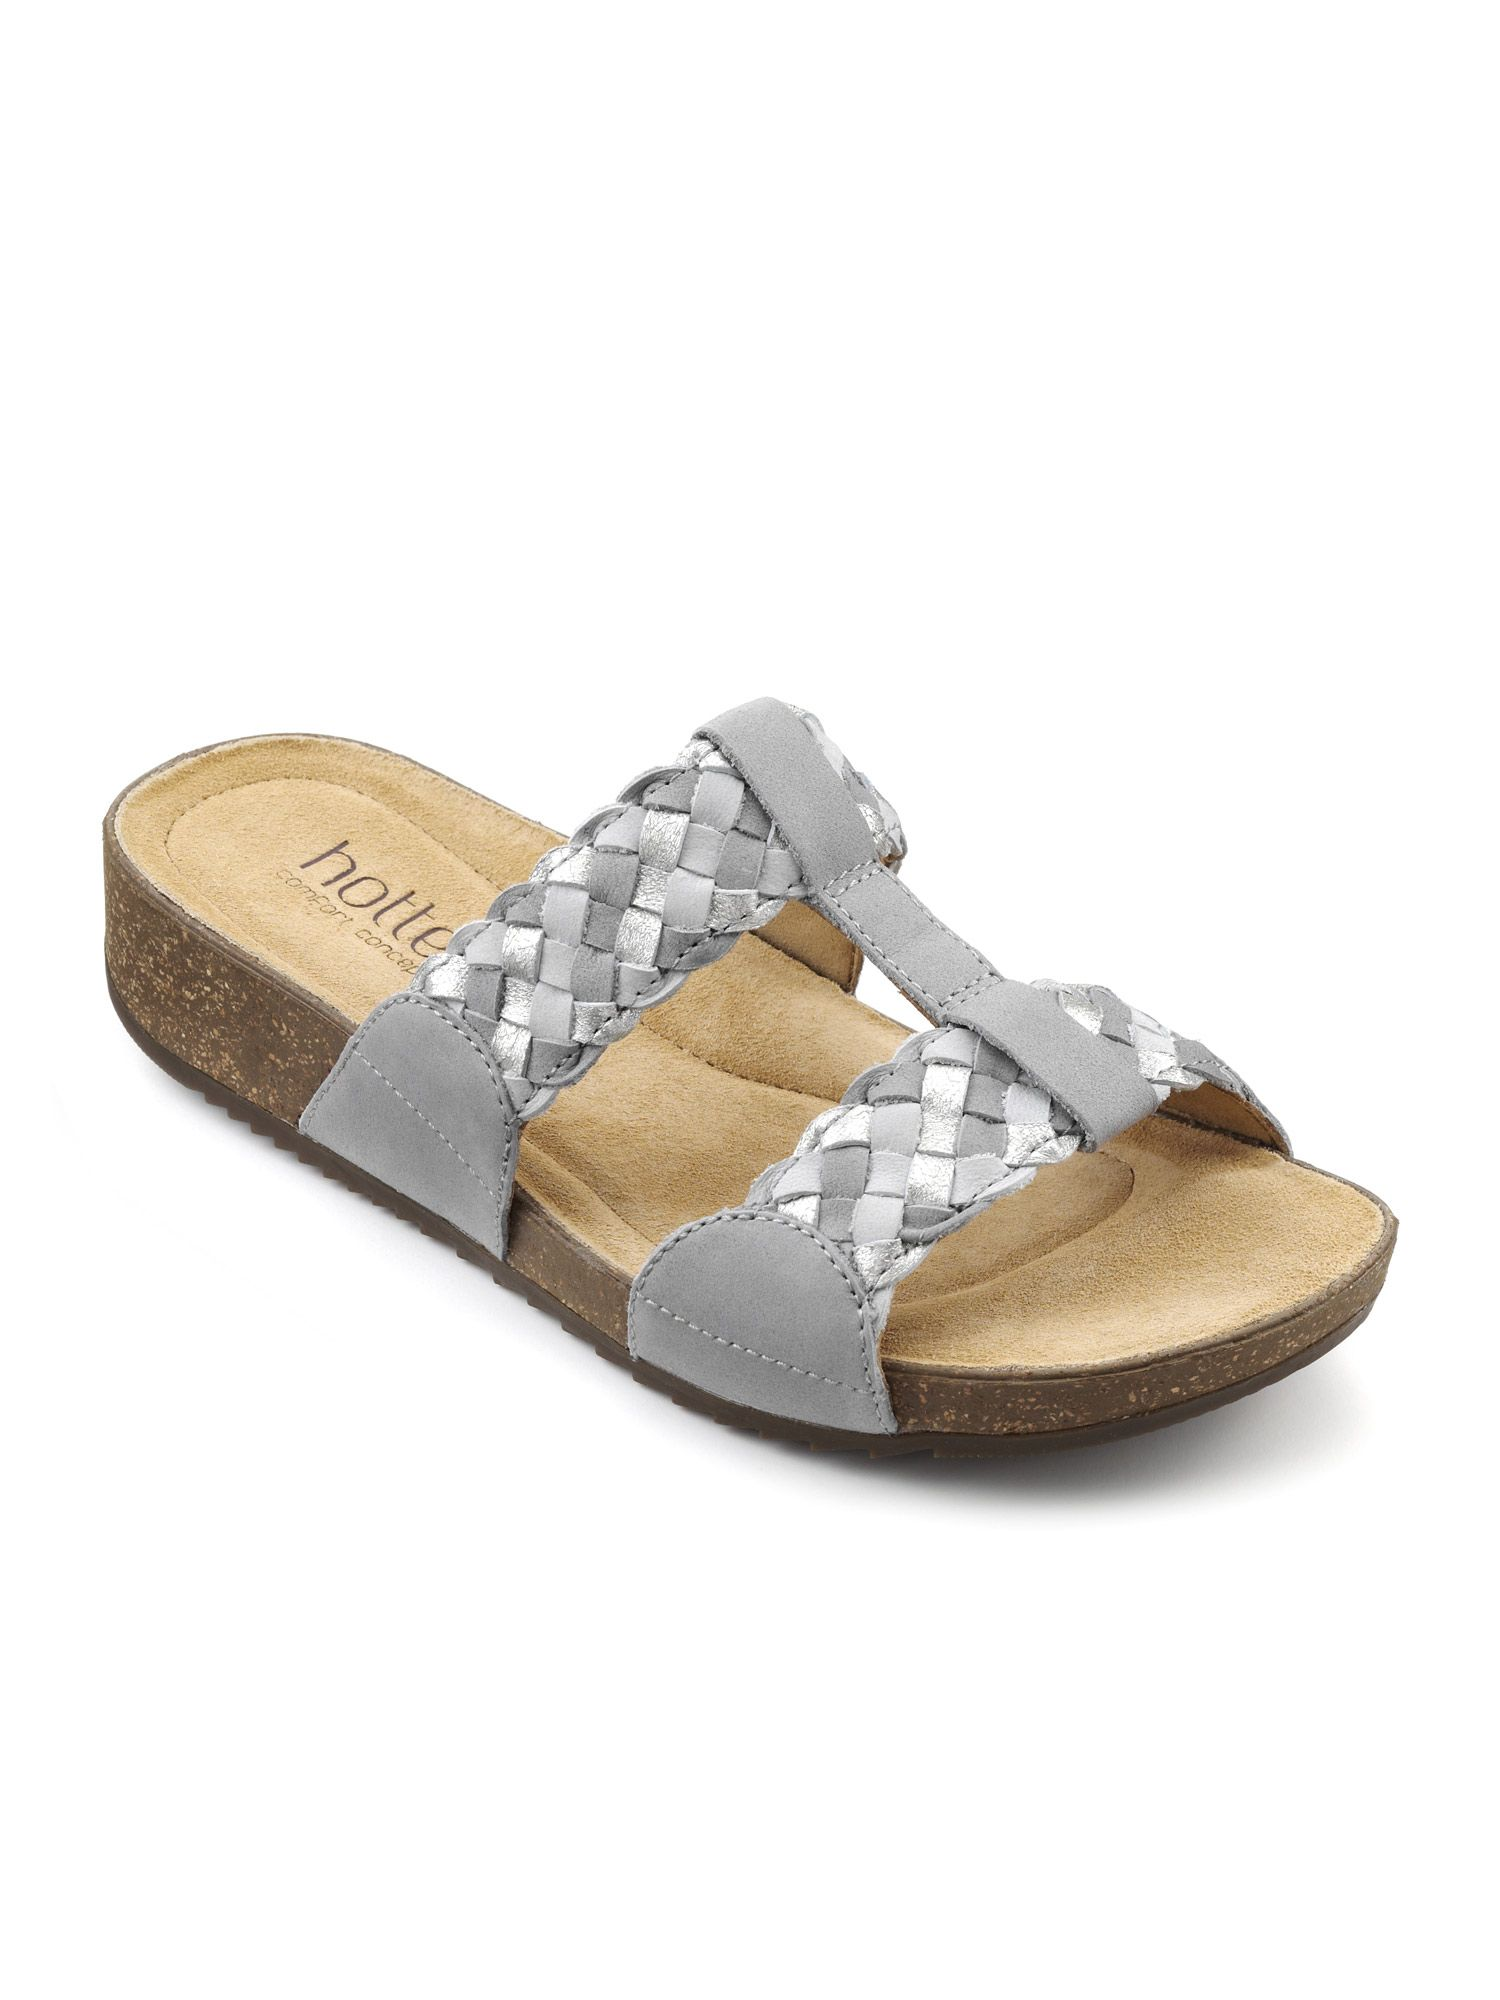 Hotter Escape Stylish Hotter Sandal, Grey